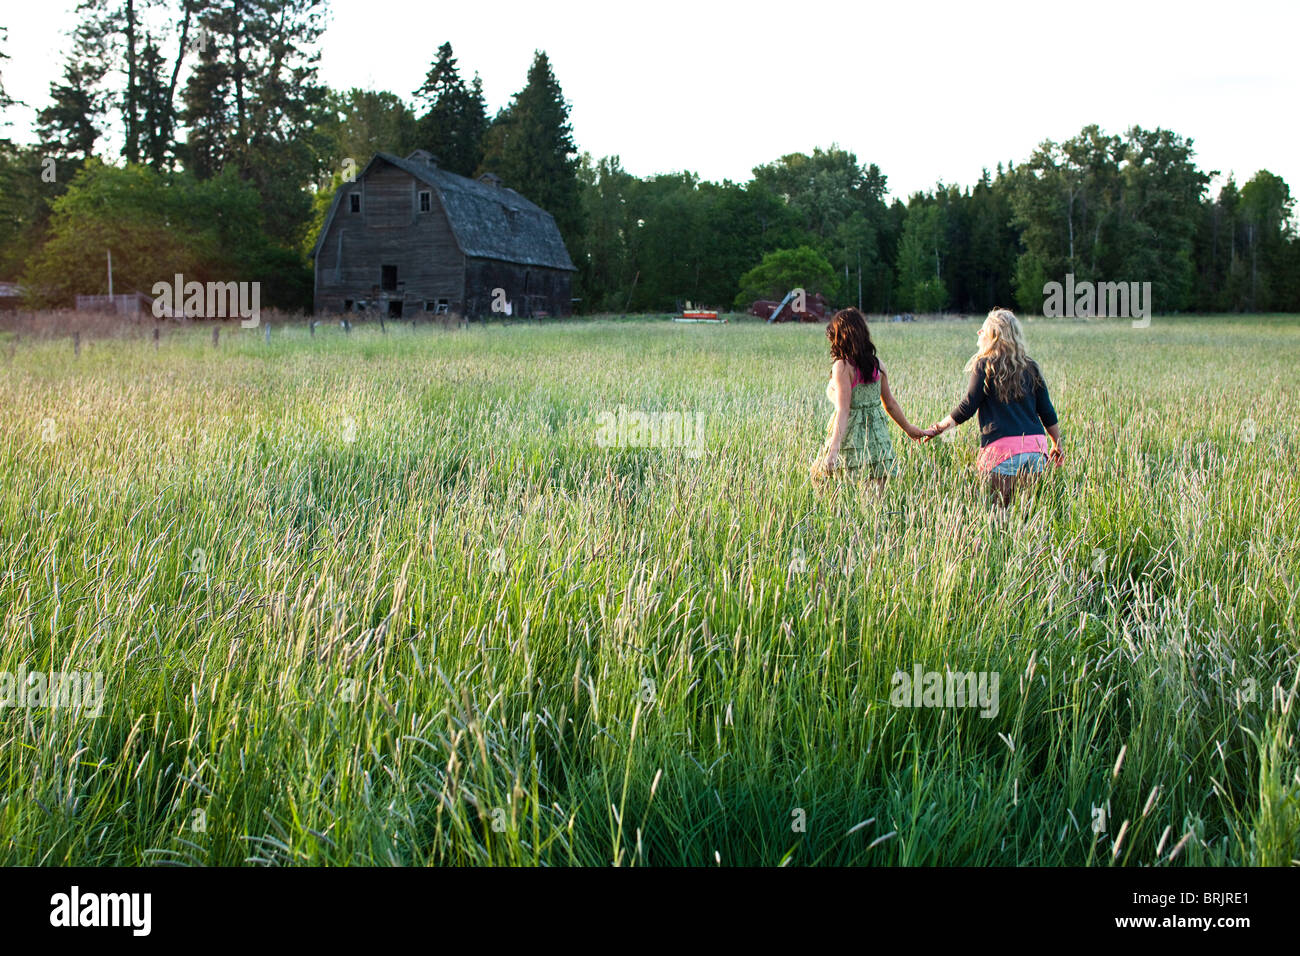 Girls walk through grassy field in Sandpoint, Idaho. - Stock Image